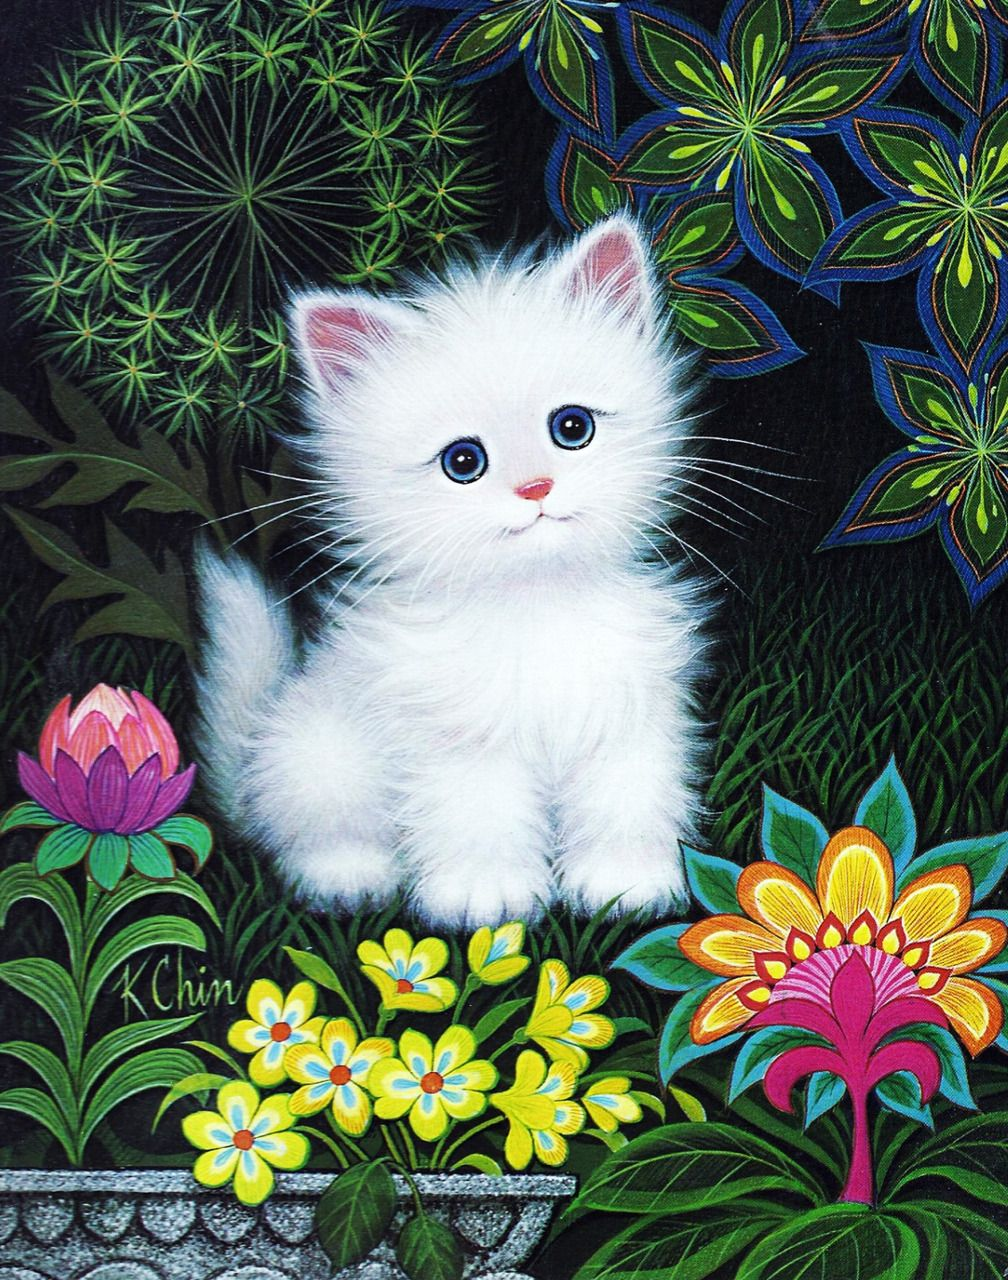 Kitten By K Chin 1970 S And Like Omg Get Some Yourself Some Pawtastic Adorable Cat Apparel Kitten Images Cat Art Cat Drawing